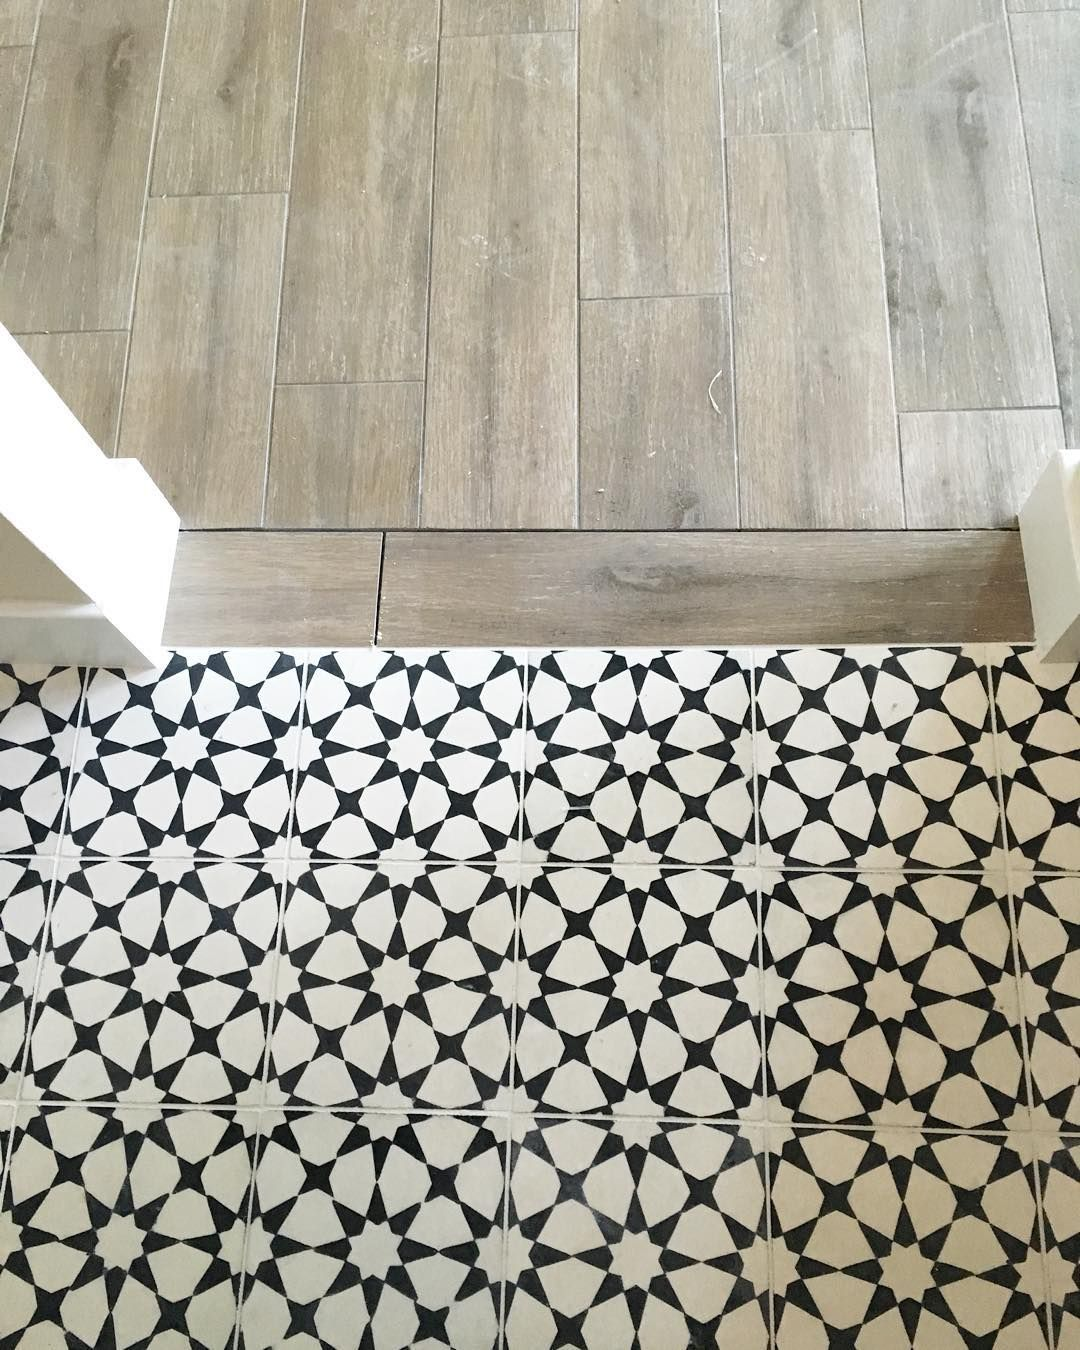 Vanessa matsalla wood to cement tile transition for Hardwood floor panels